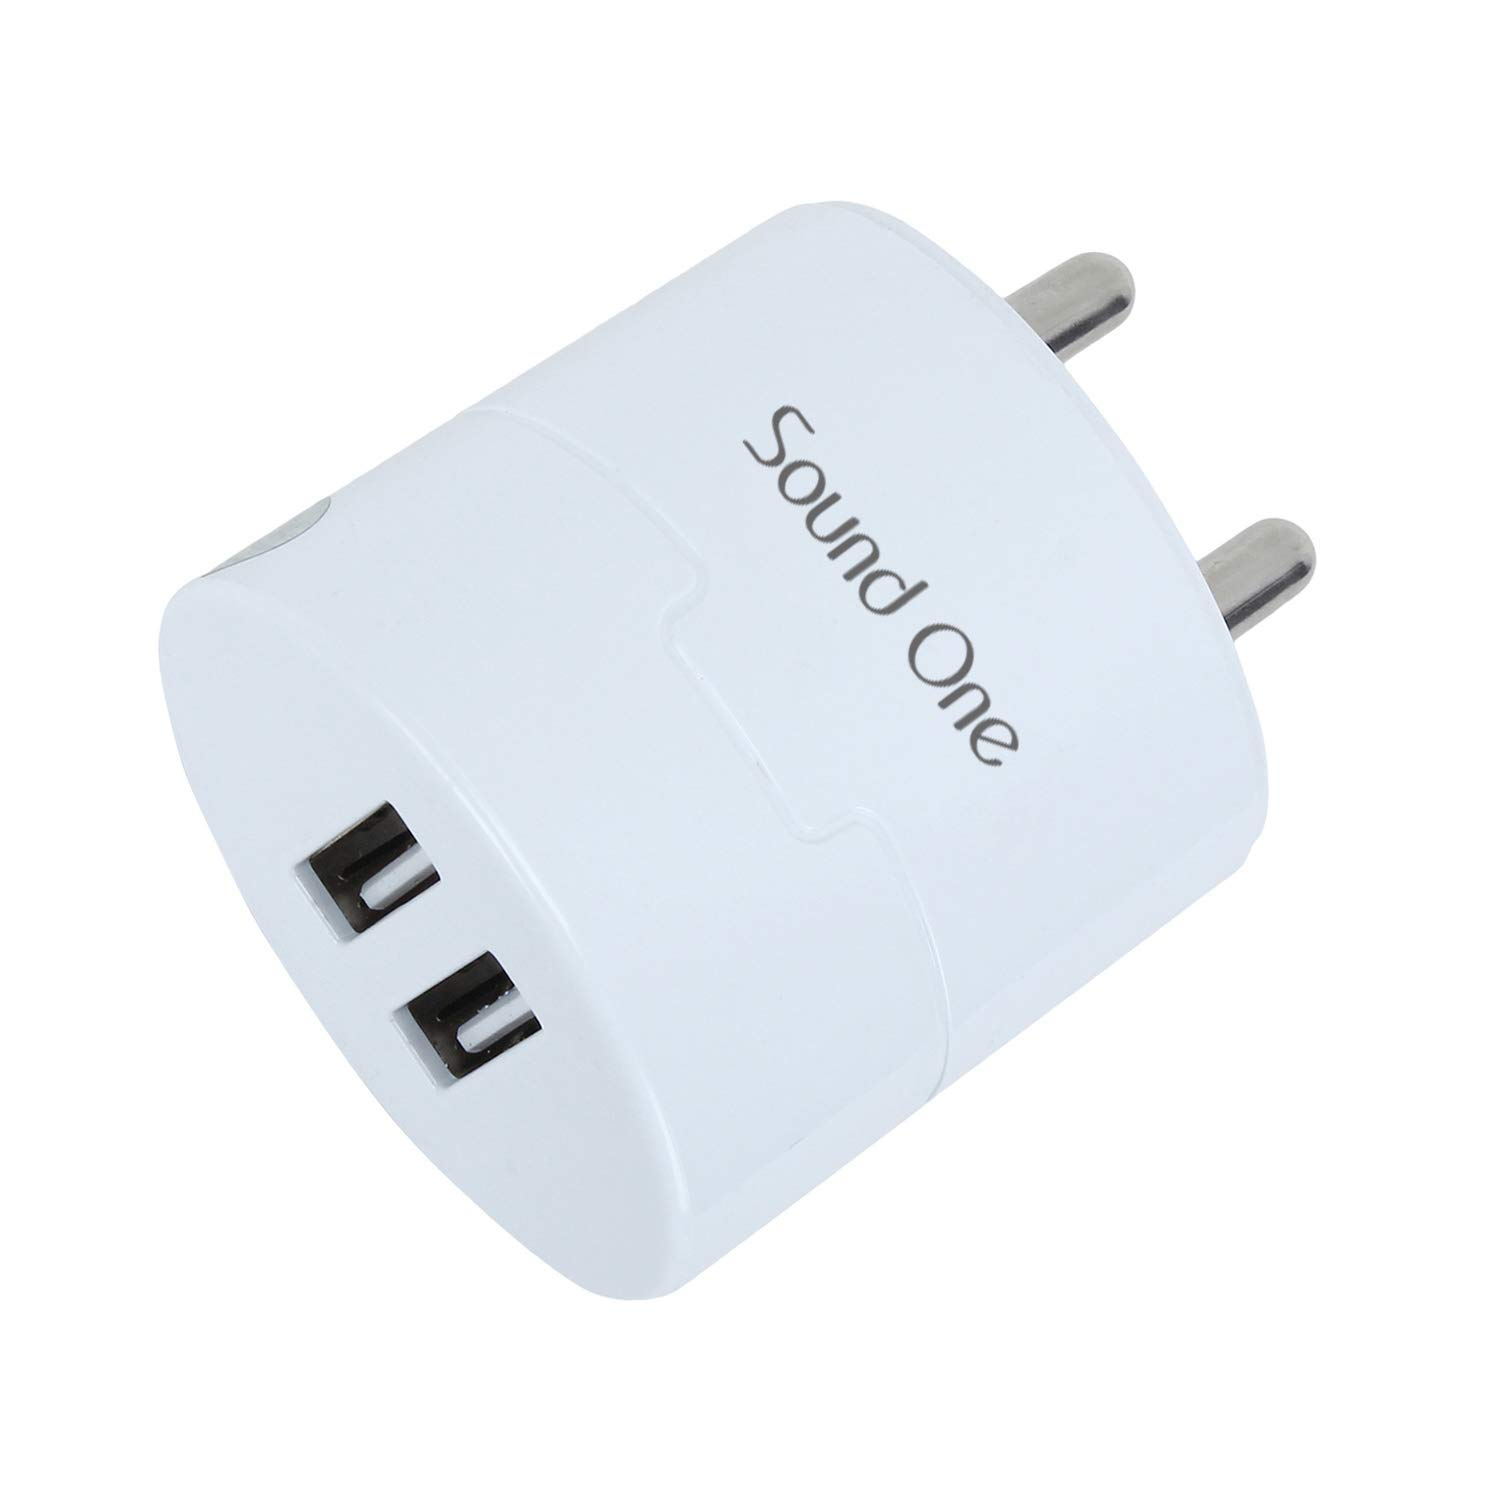 Sound One SO-DWC-600 2.4A Dual Port Smart Wall Charger (White)